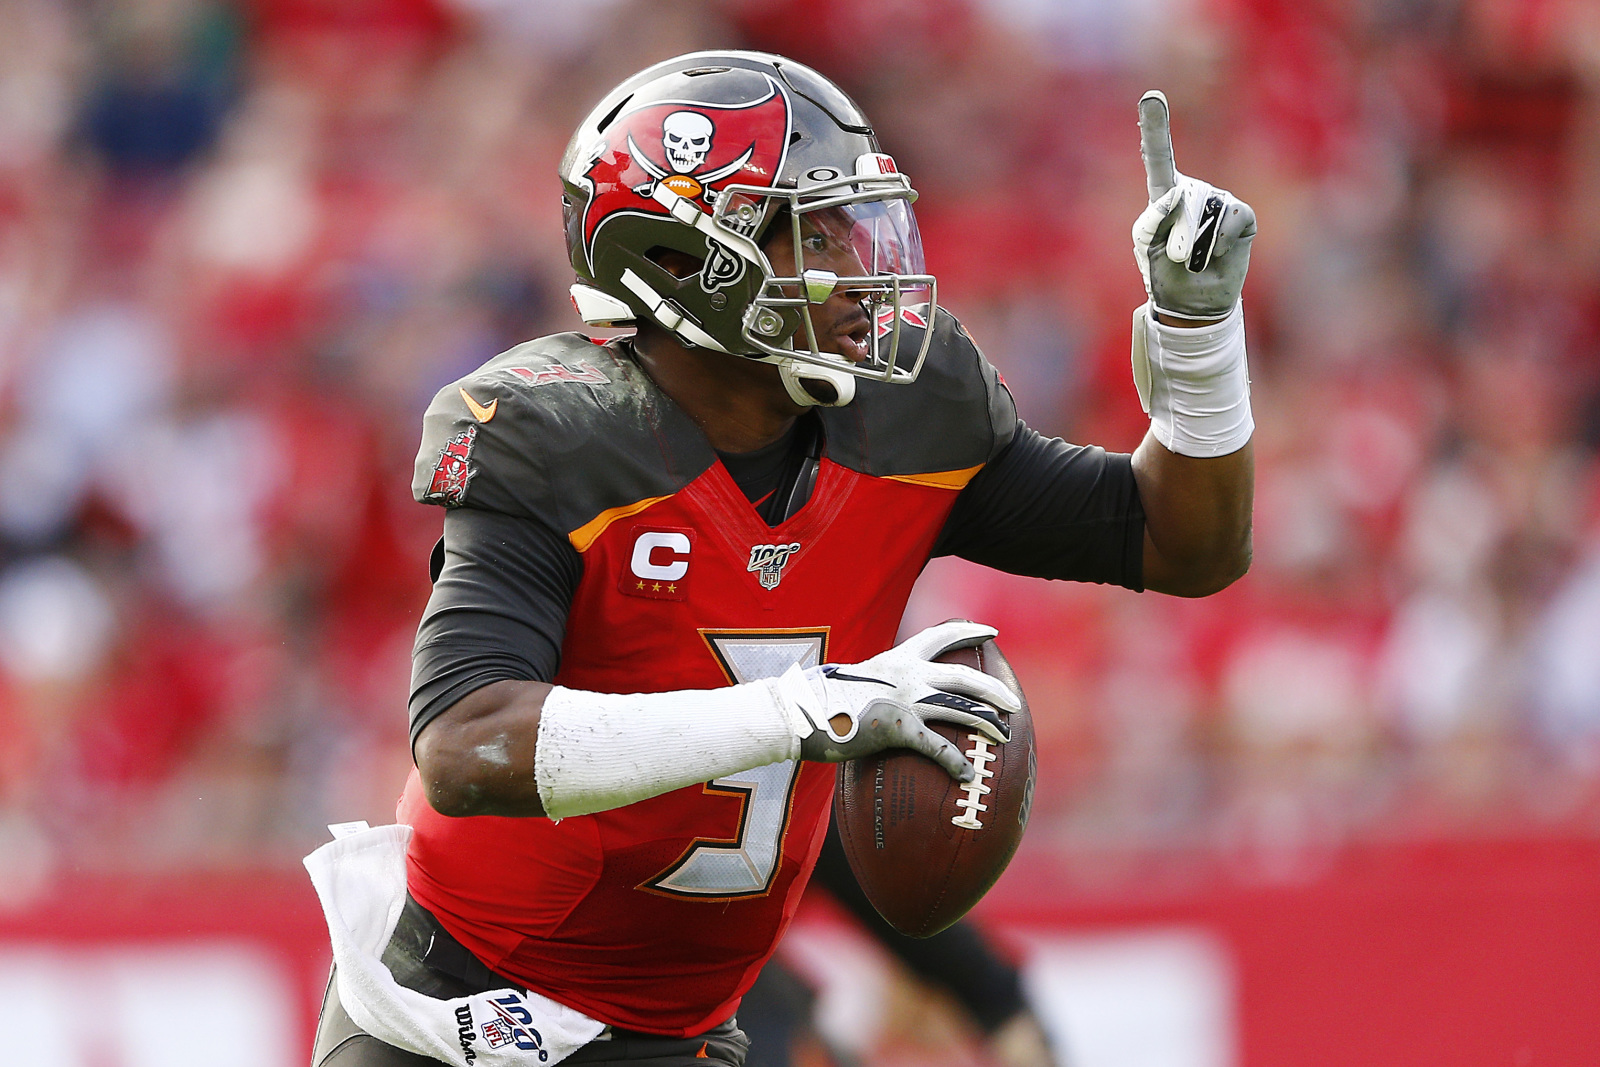 'Jameis Winston to the Steelers' talk isn't going away anytime soon